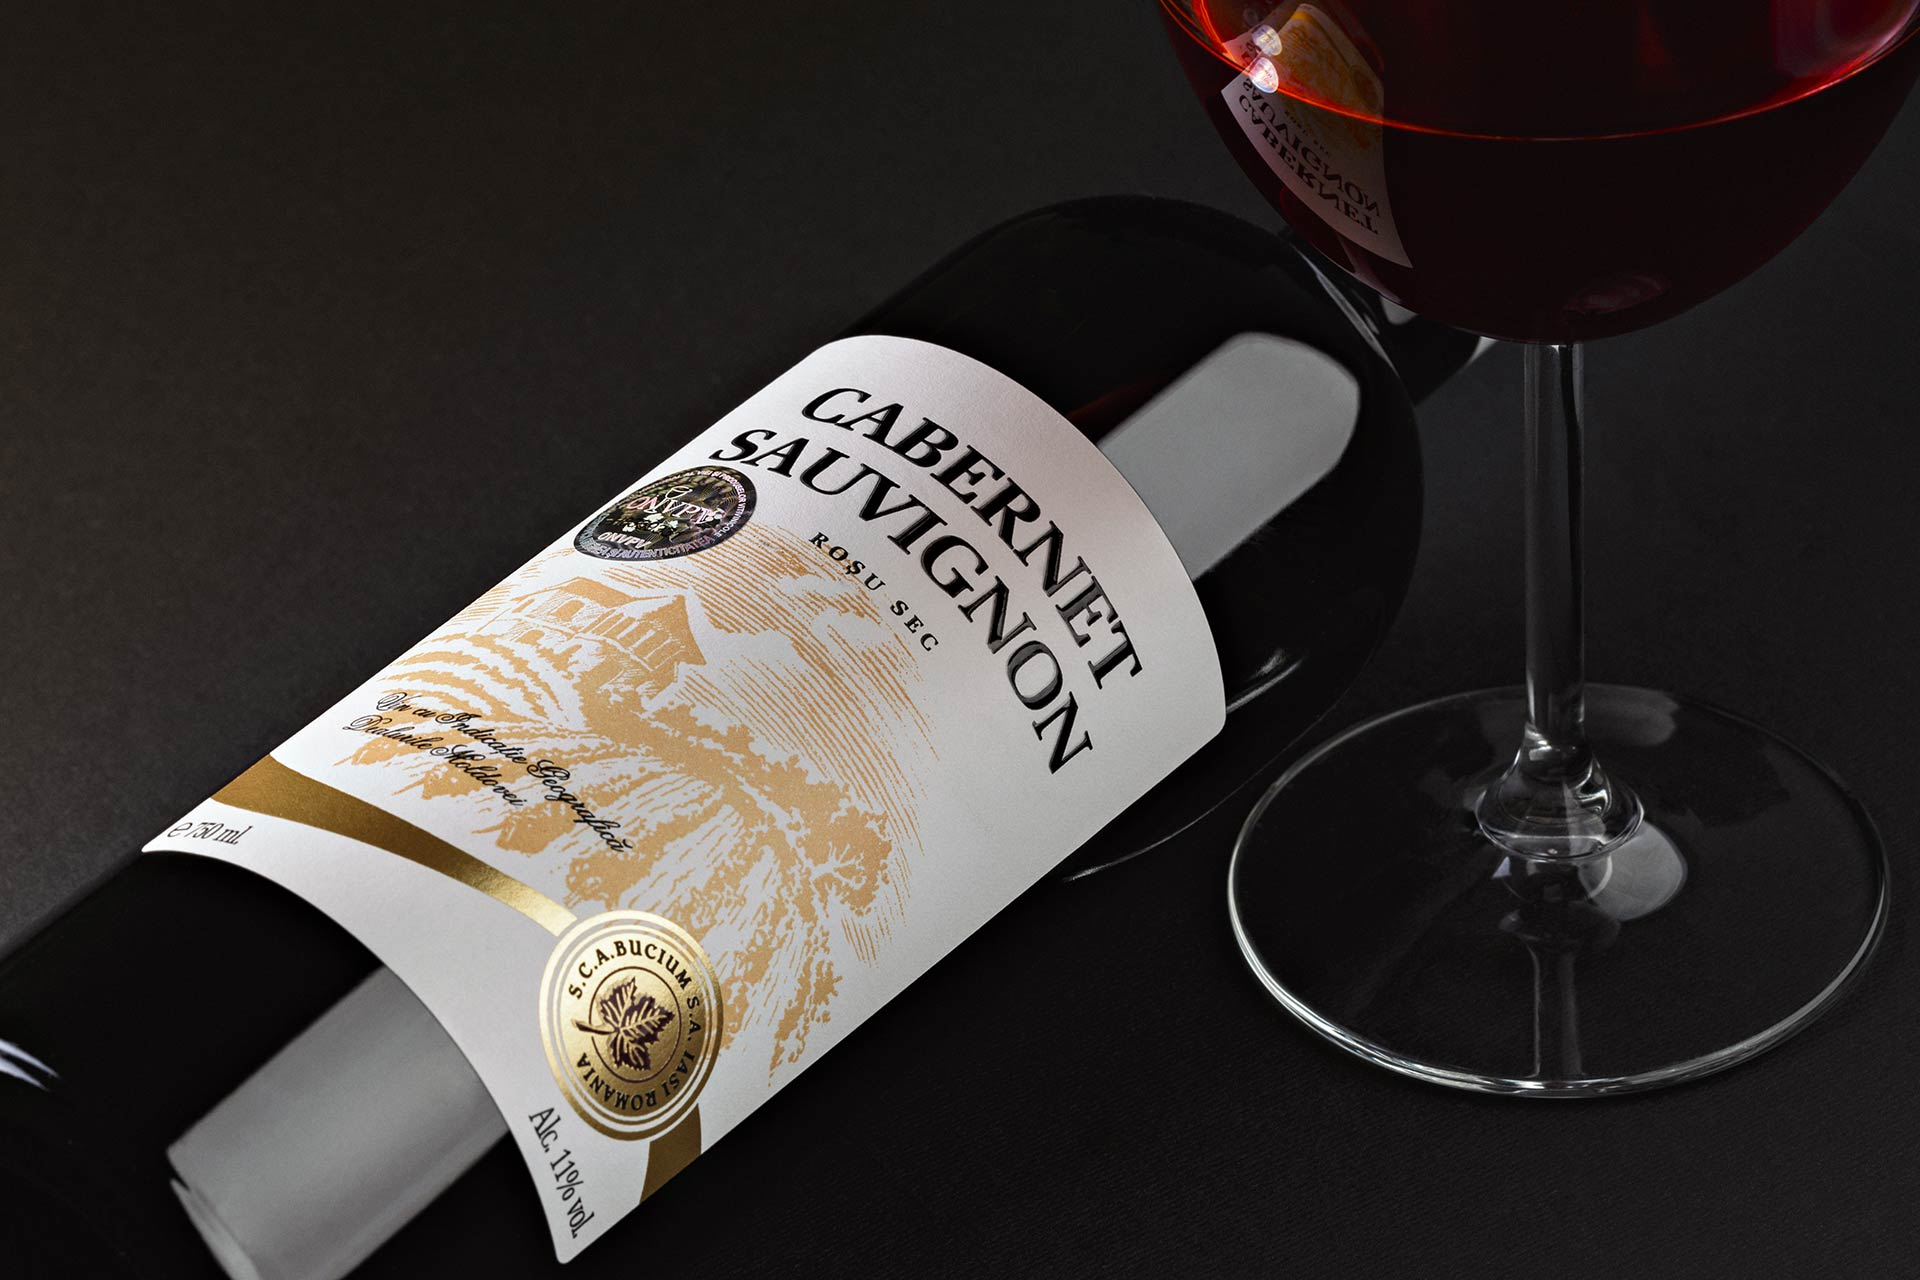 wine-packshot-commercial-ad-print-campaign-studio-photoshoot-highend-retouch